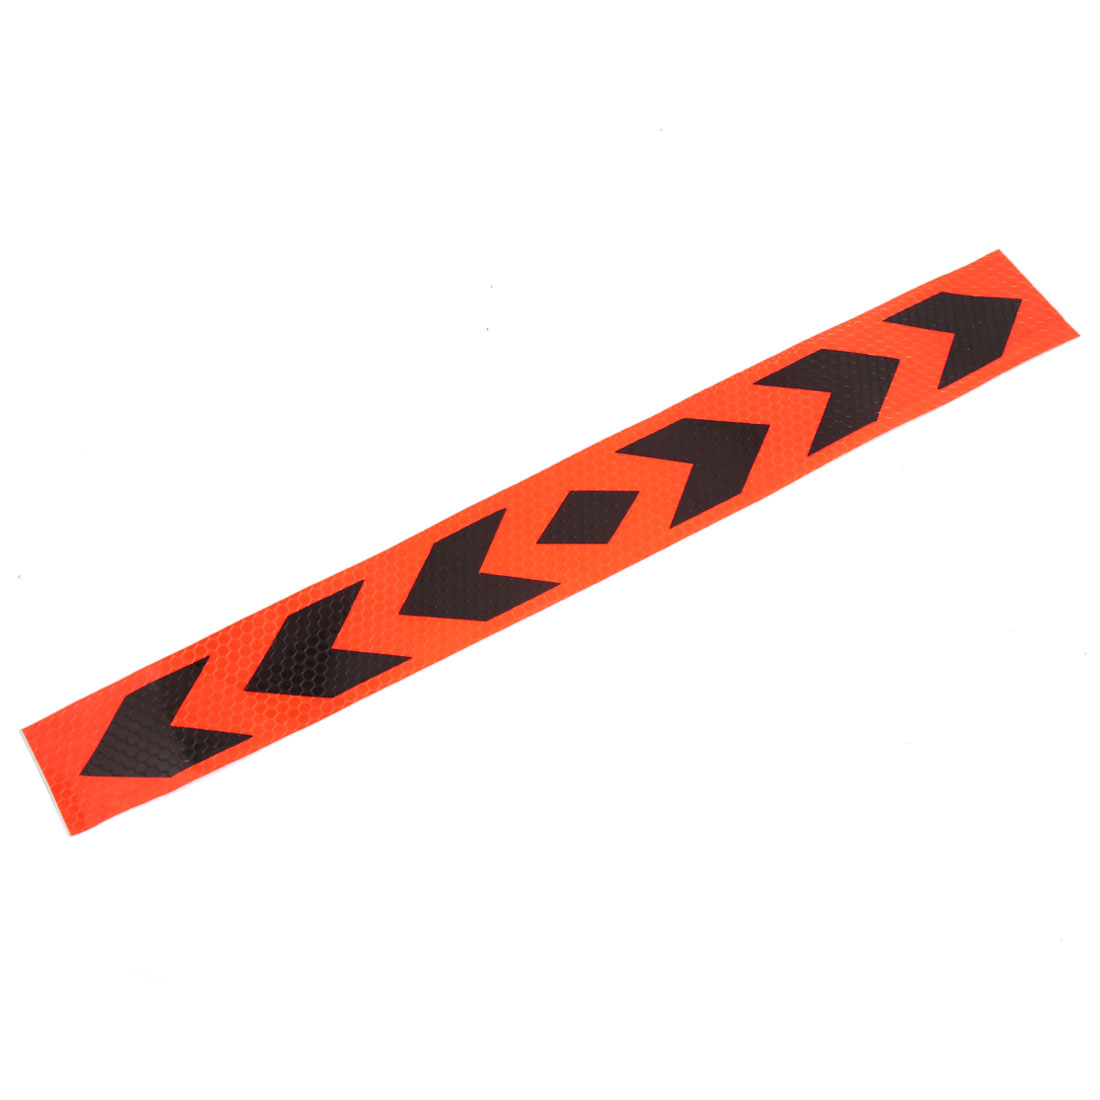 39cm x 5cm Black Arrows Pattern Stick-on Reflective Sticker Strip 8pcs for Car